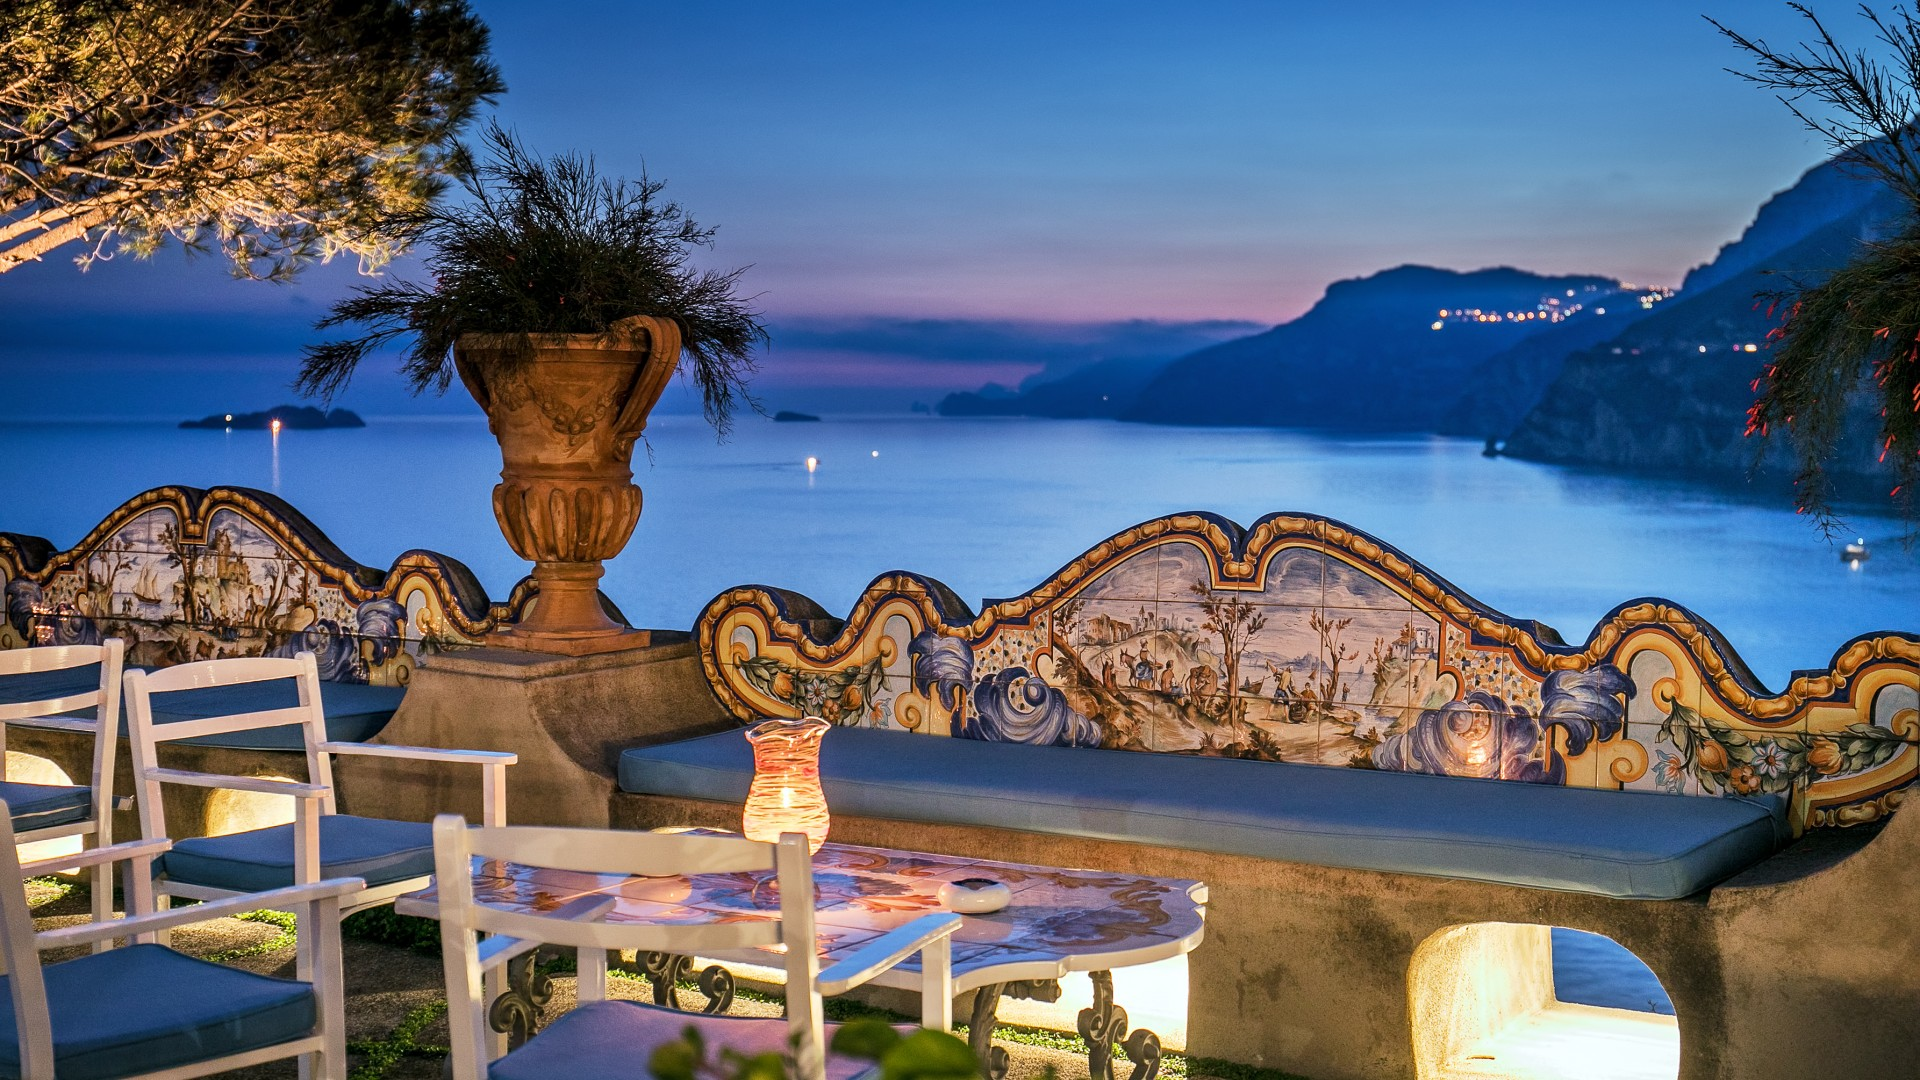 Terrace at Il San Pietro luxury resort, Italy